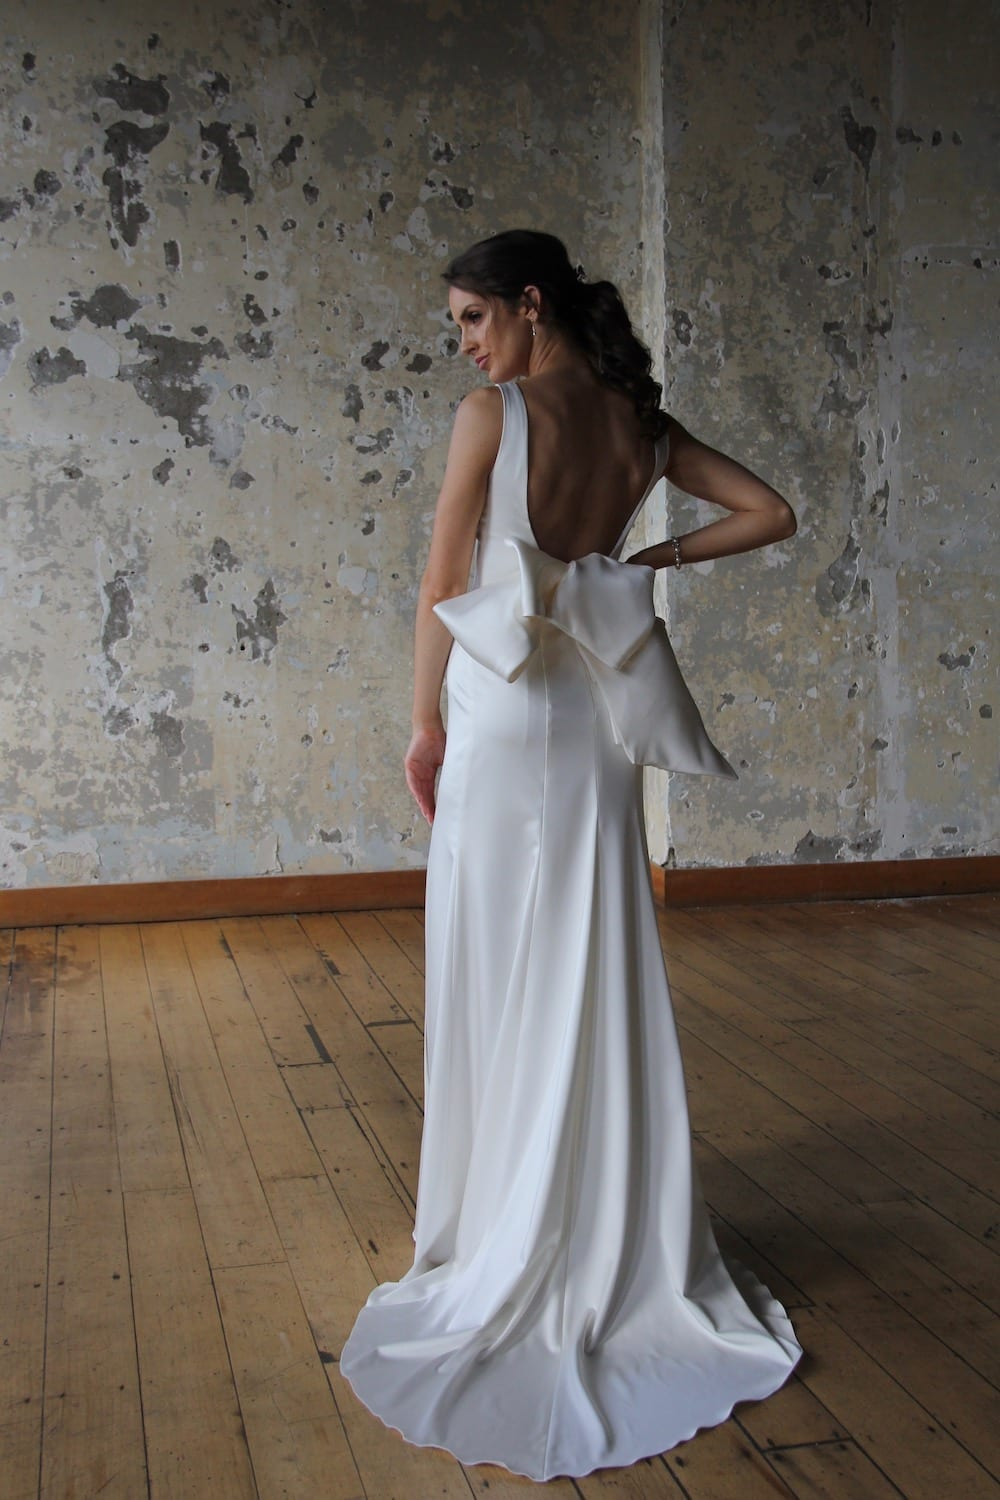 Female model wearing Vinka Design Modern Muse Wedding Dress. In chic warehouse the back detail of a gown with a bateau neckline and low scooped back gently flaring to a simple train with a detachable bow.